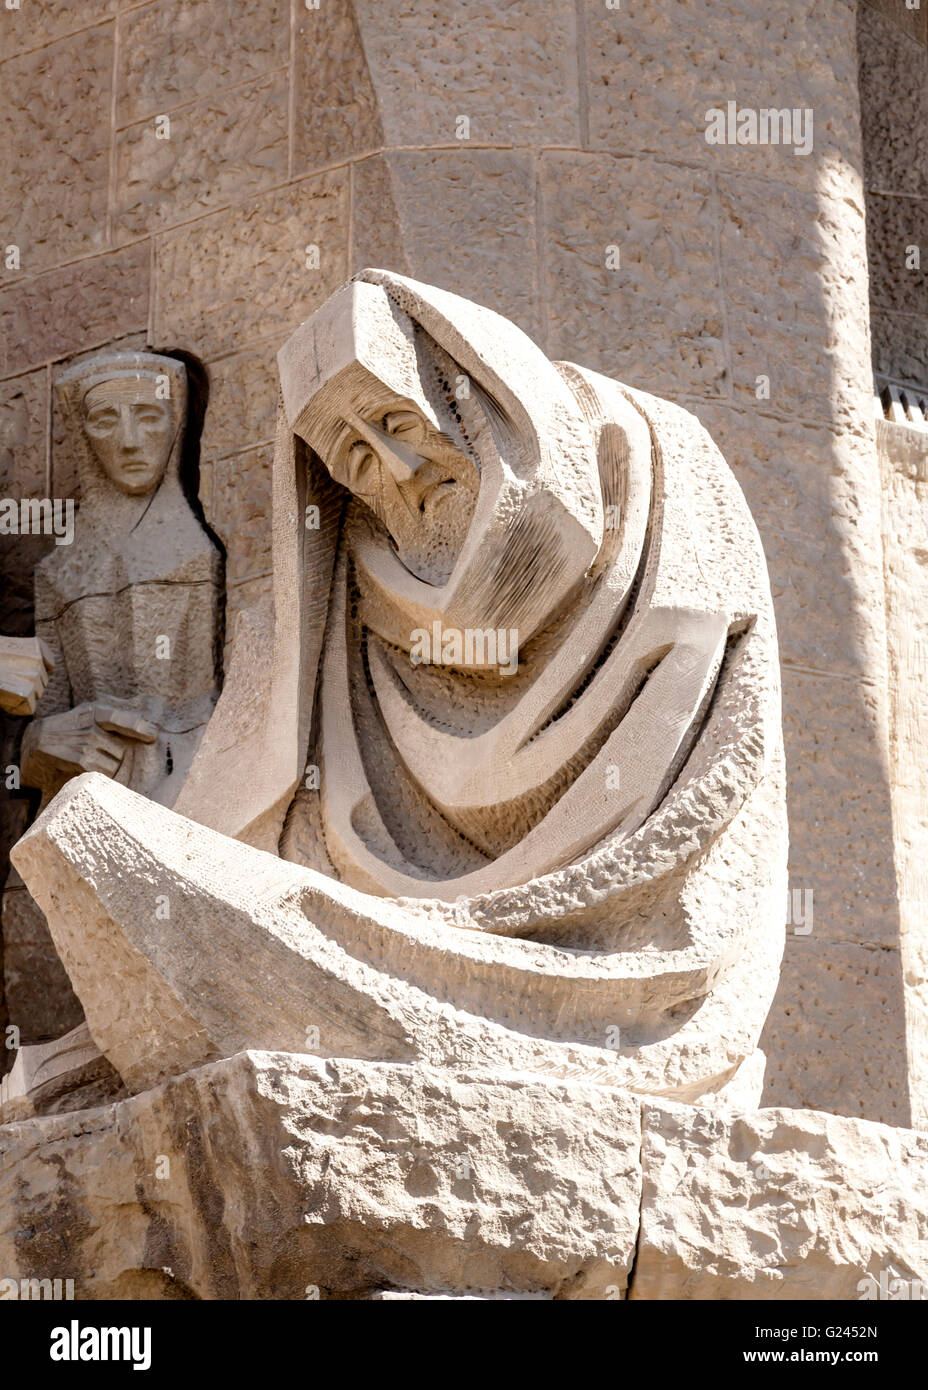 Abstract sculpture of a man in a robe by Antonio Gaudi, Sagrada Familia Cathedral, Barcelona, Catalonia, Spain. - Stock Image